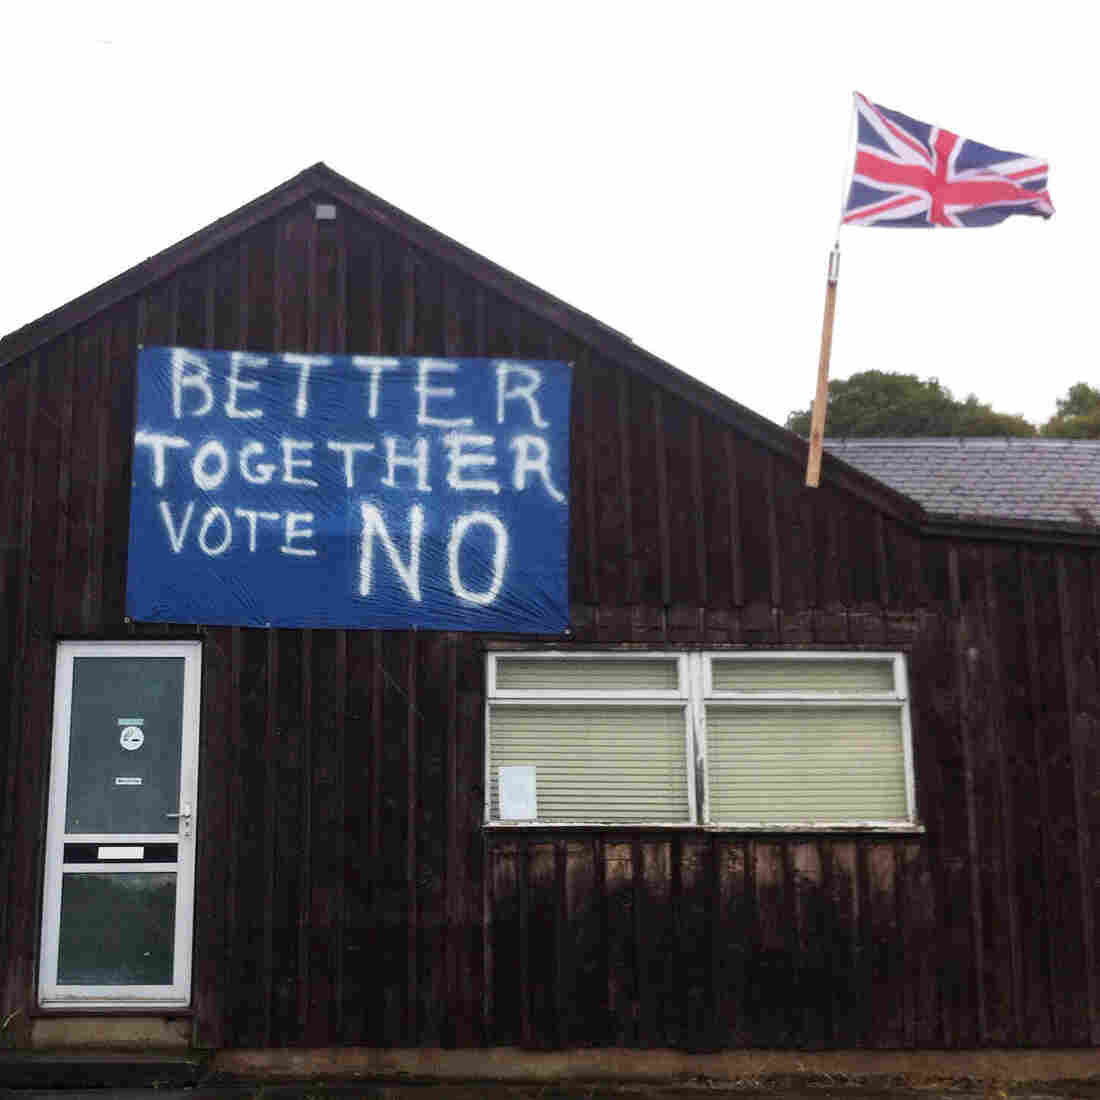 As Scotland Eyes Independence, Poll Gives Edge To Leaving The U.K.